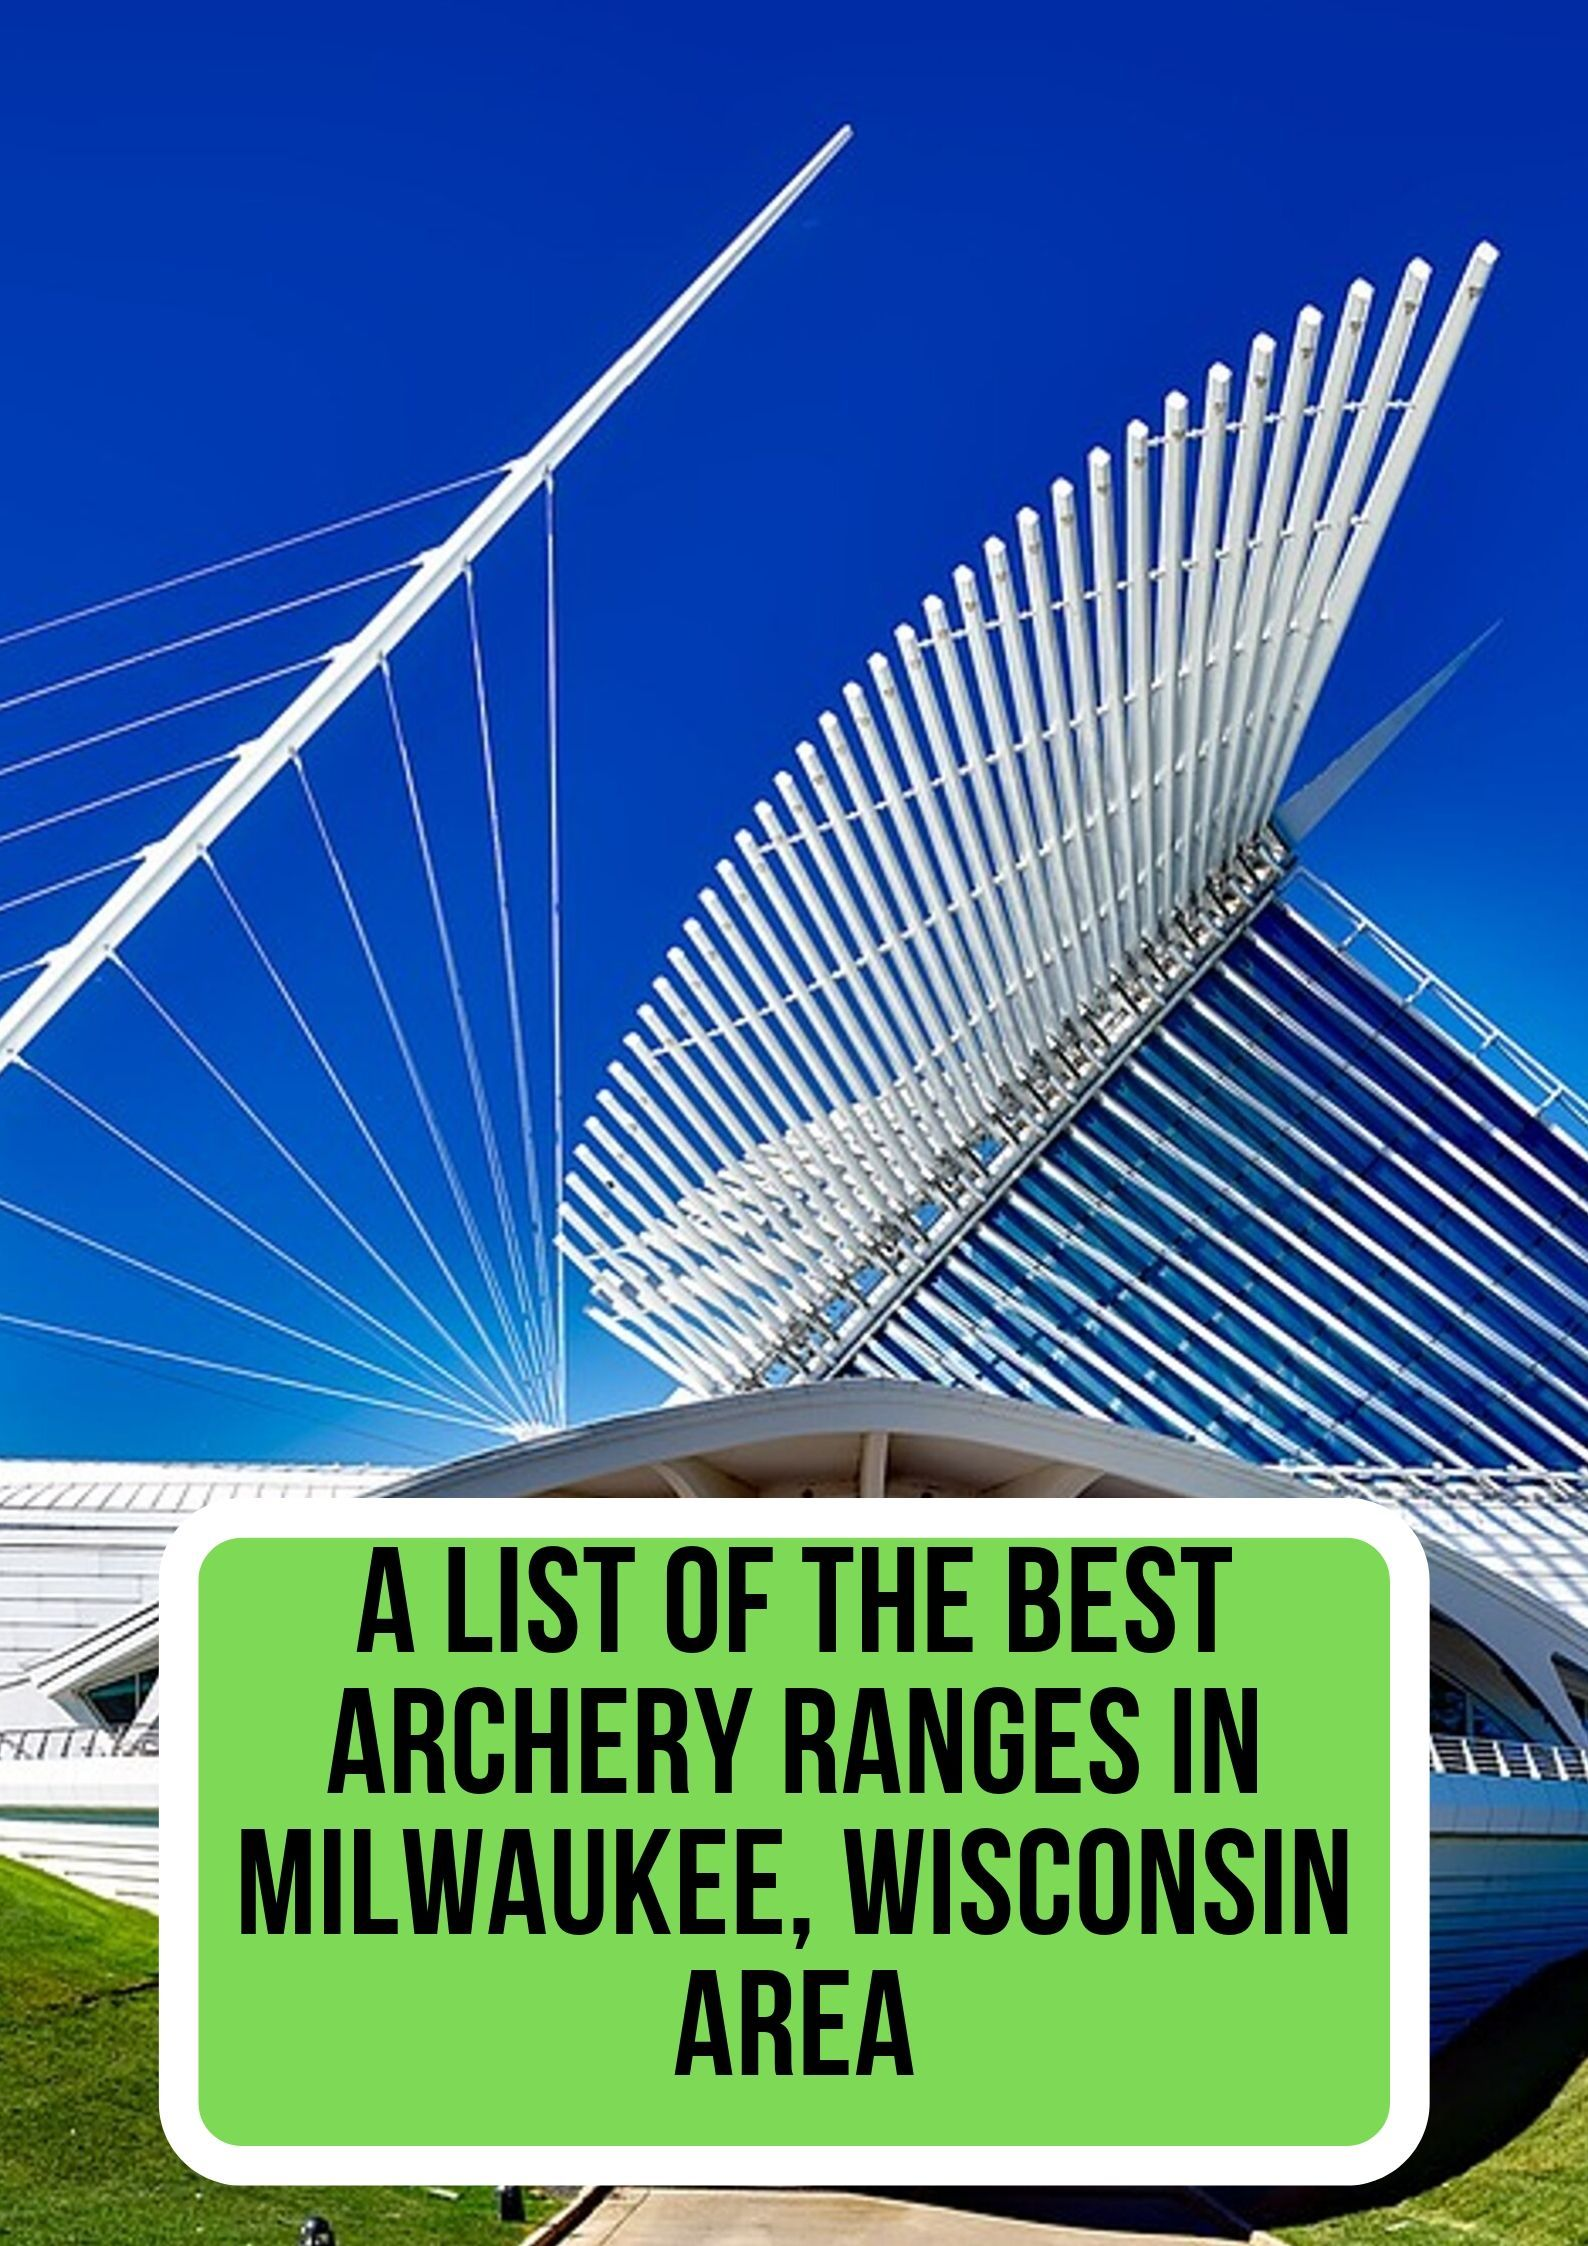 A List Of The Best Archery Ranges In Miwaukee Wisconsin Area Archery Range Archery Wisconsin